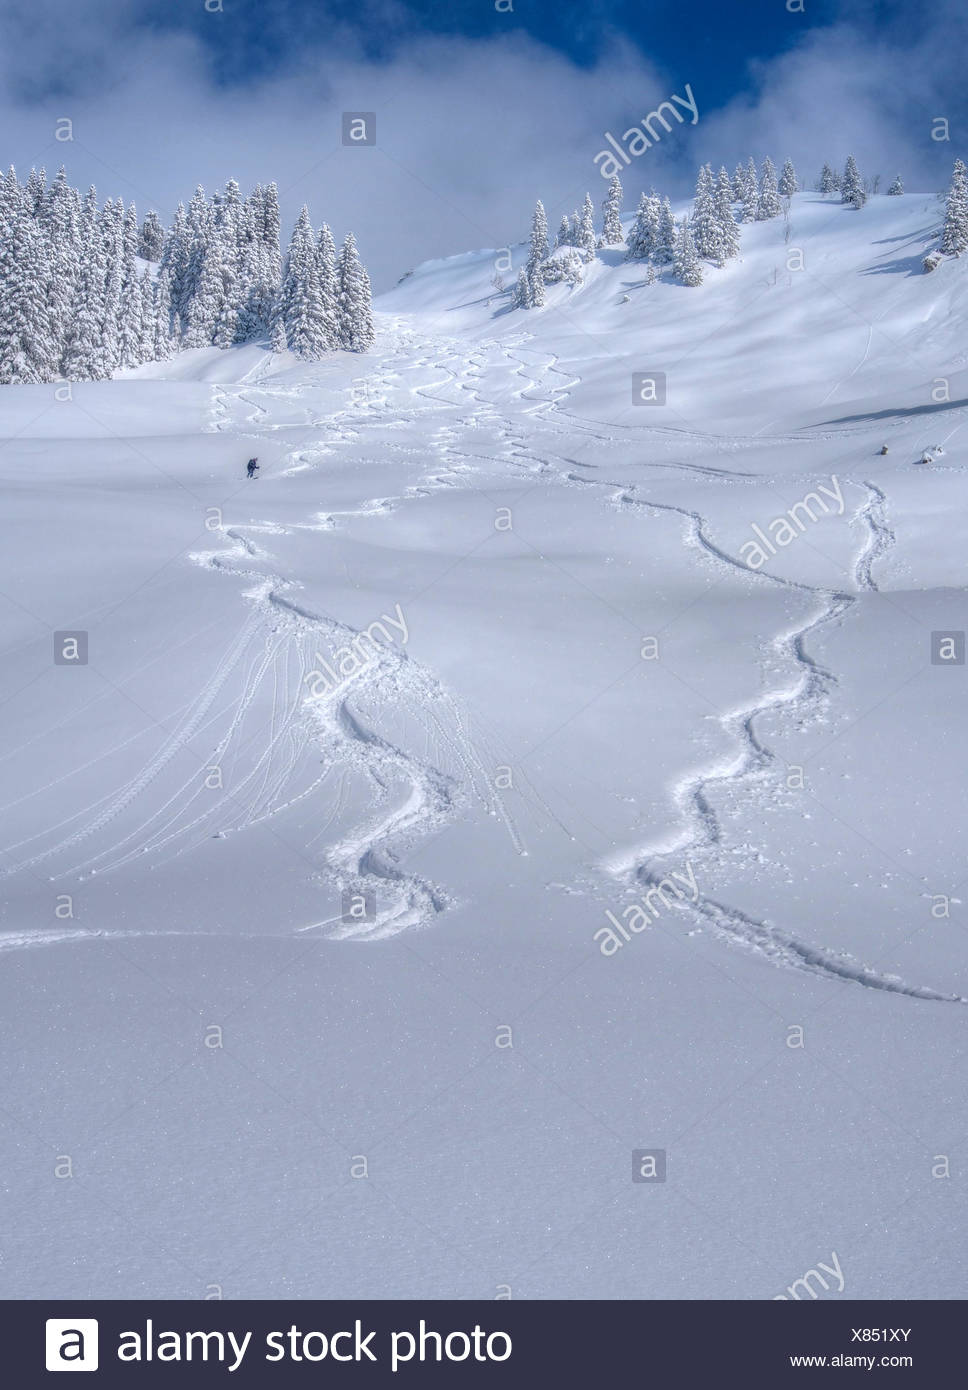 Tracks in the snow, winter sportsperson go from the Lacherspitze. - Stock Image